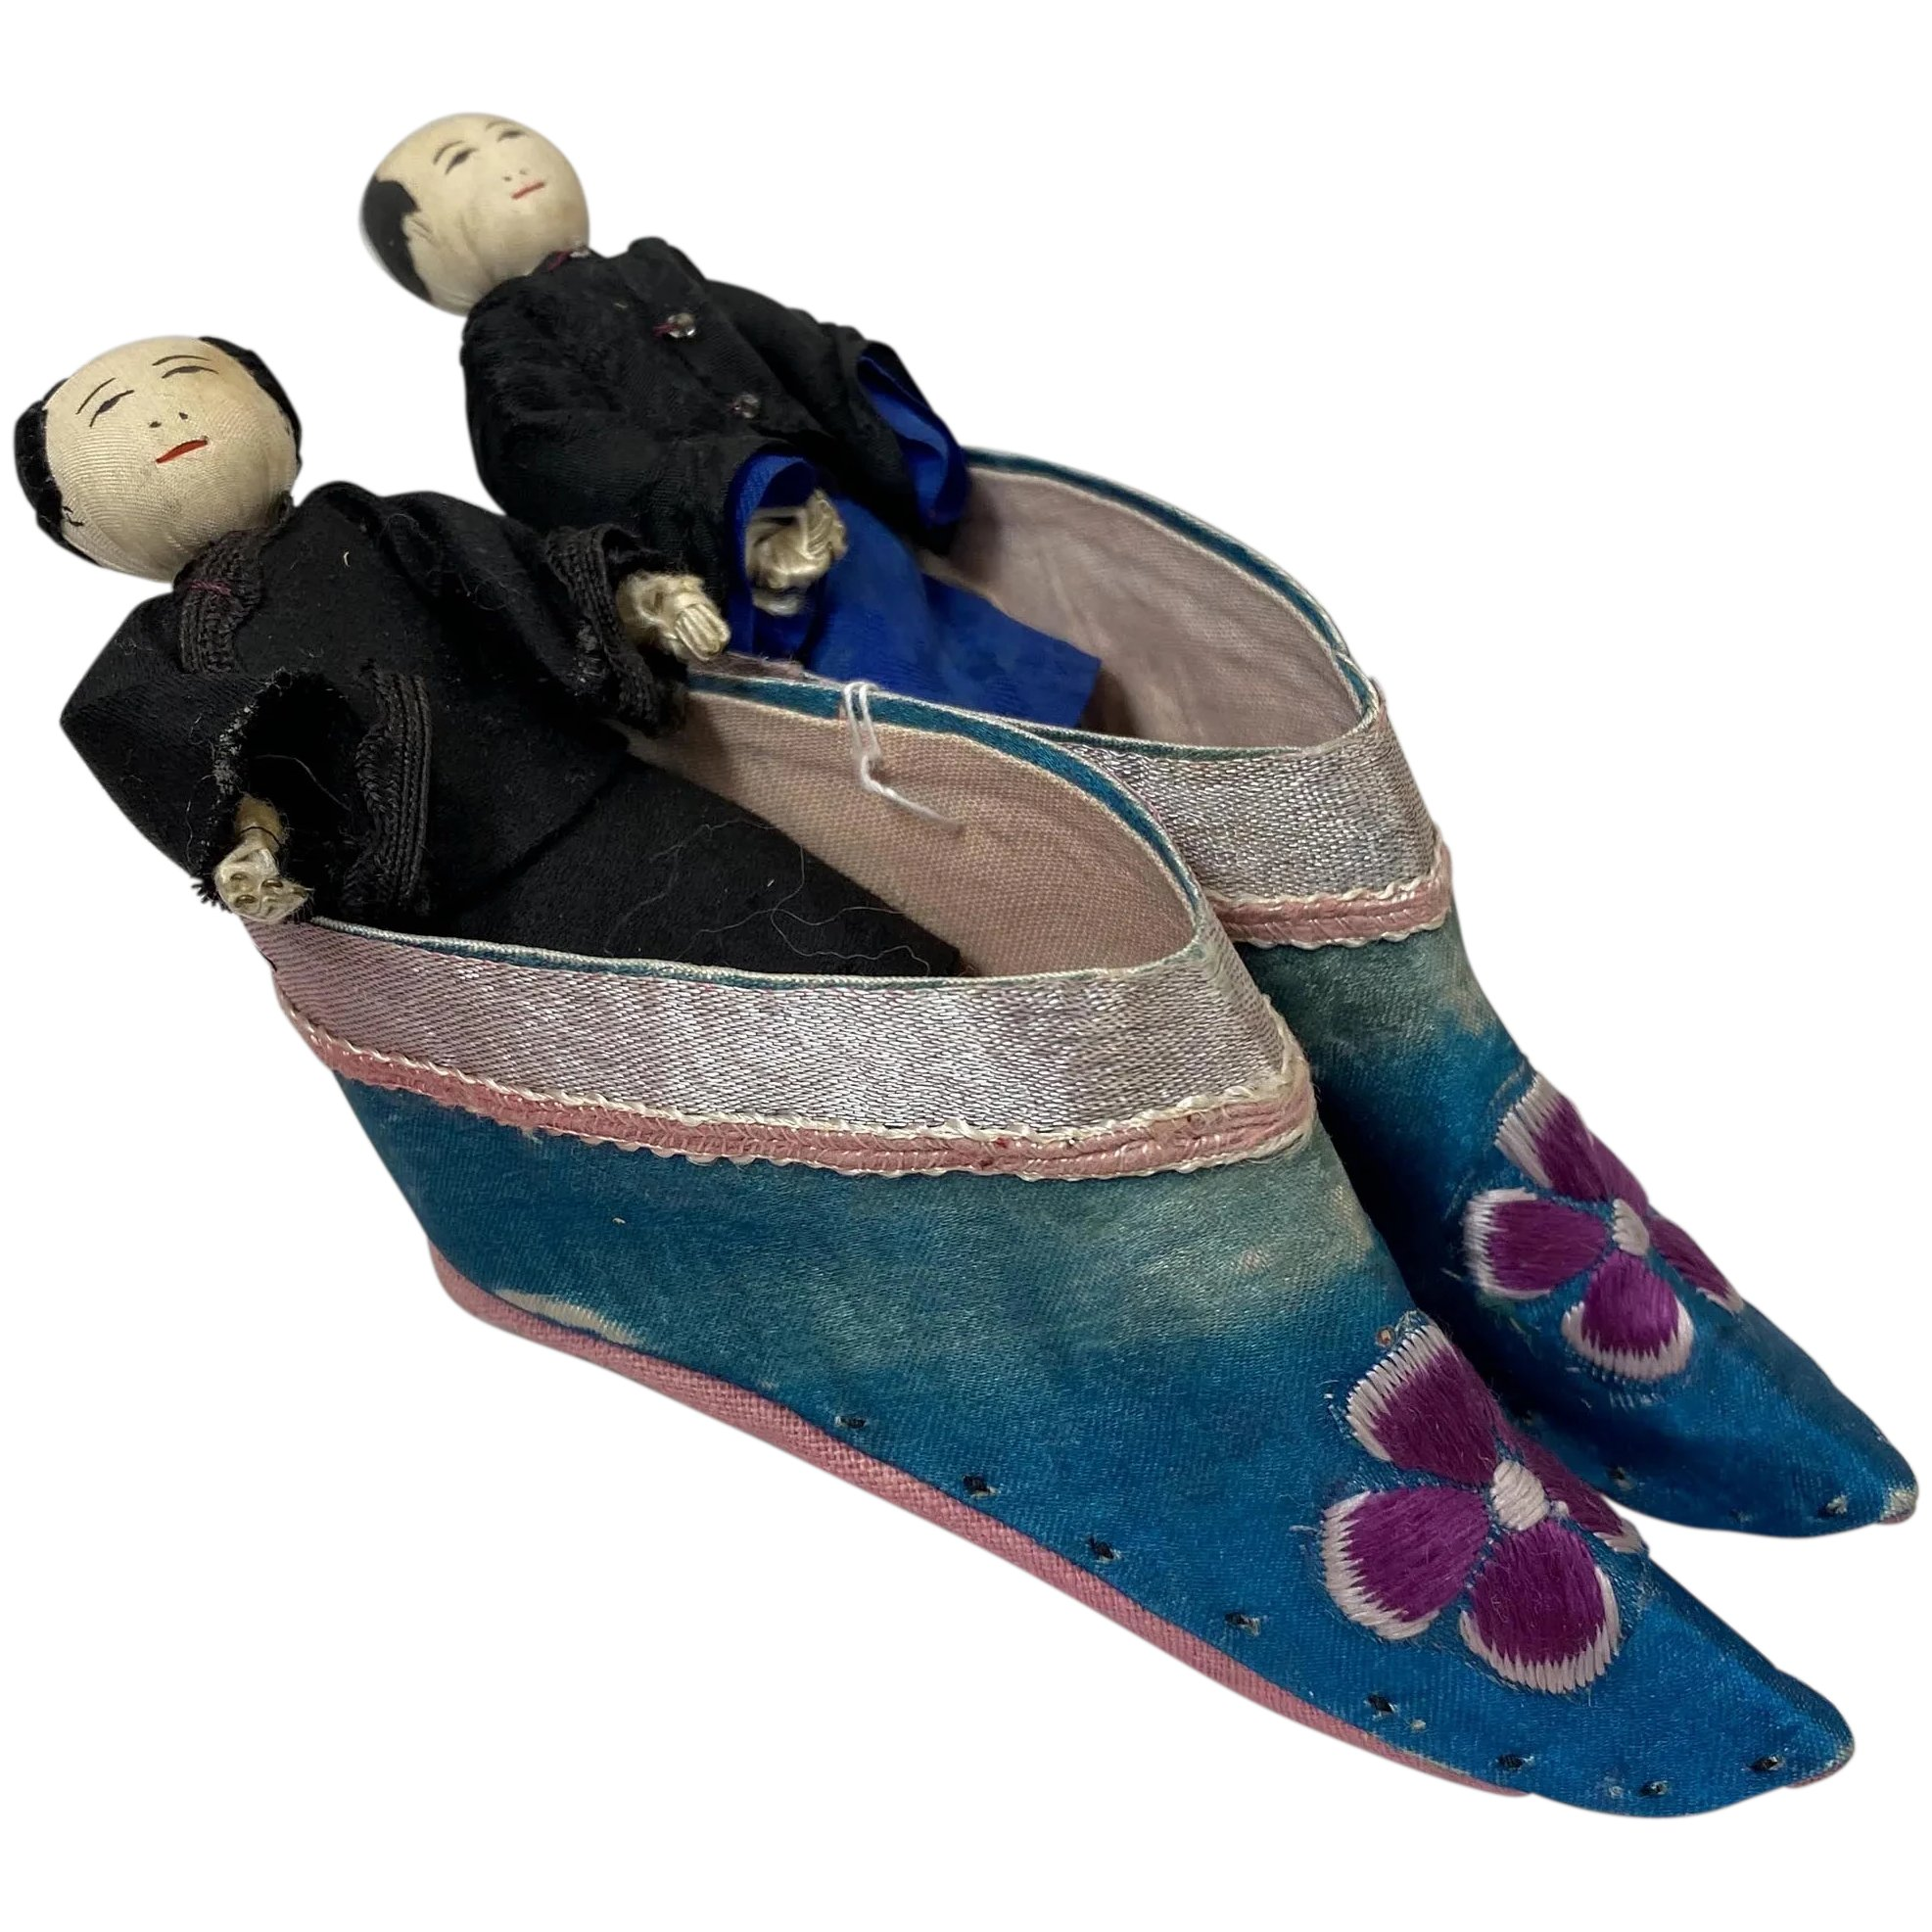 Antique Chinese Cloth Dolls And Shoes